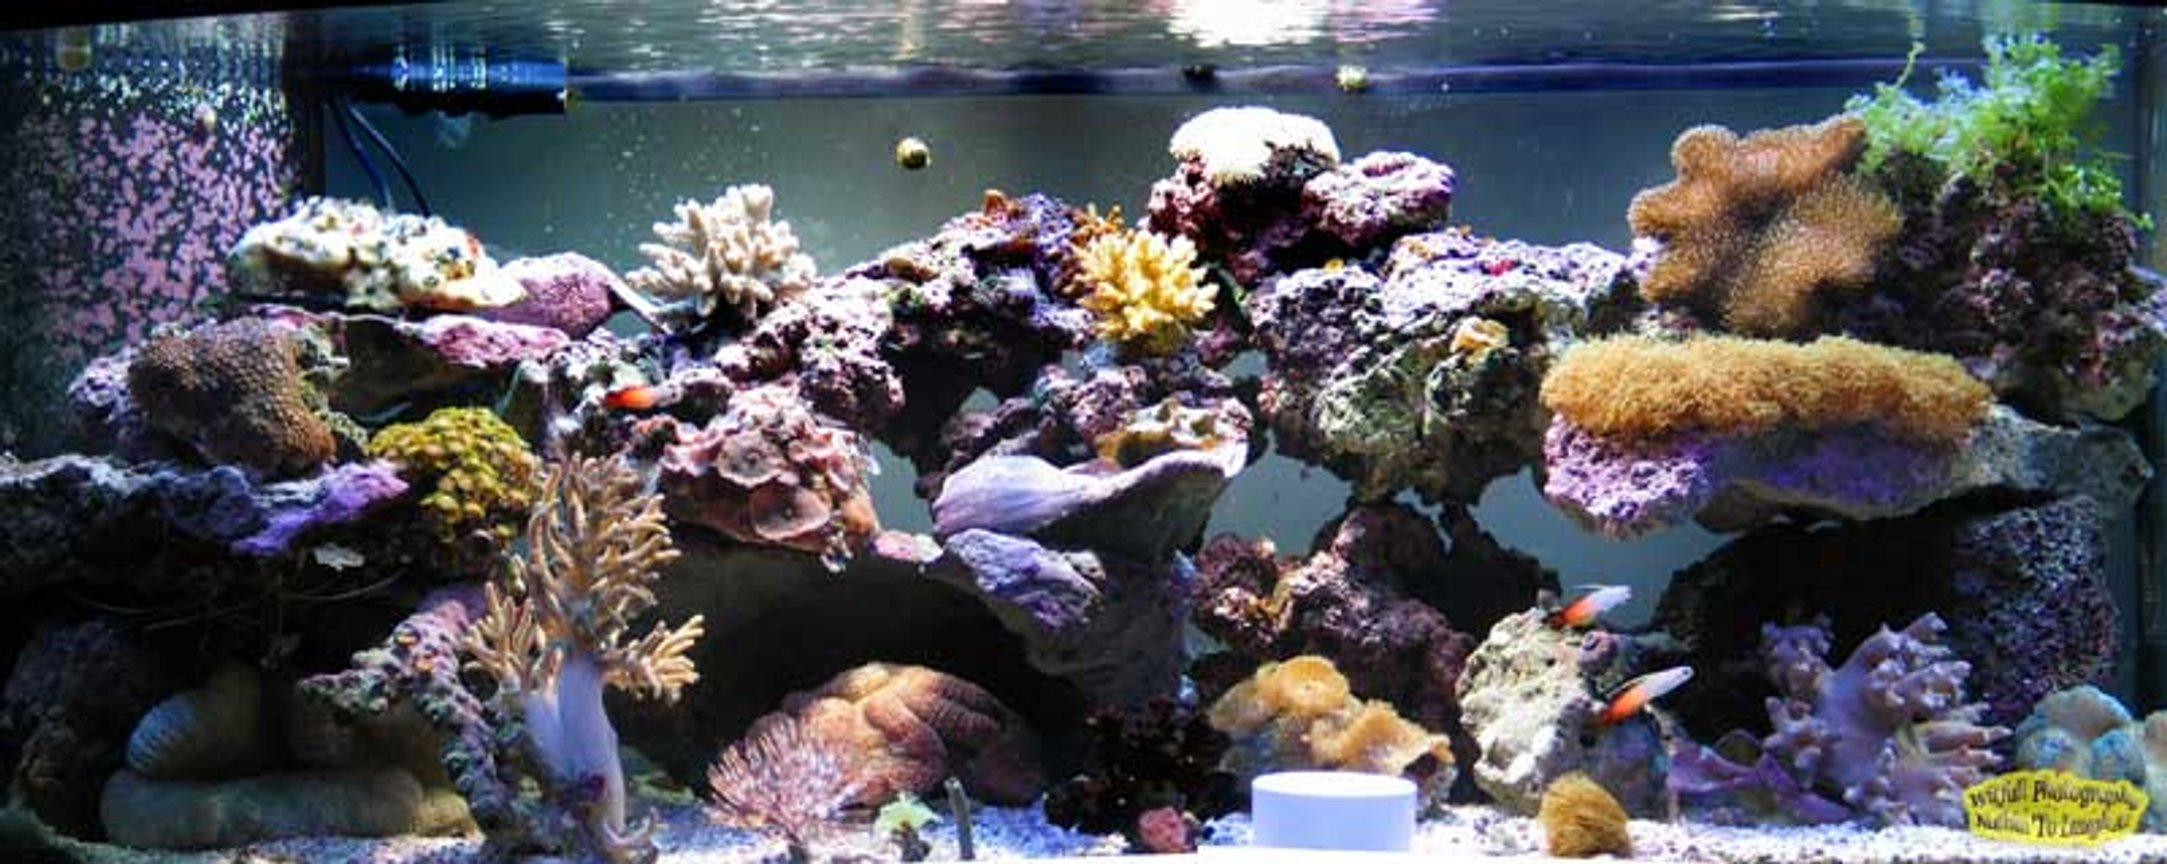 reef tank (mostly live coral and fish) - 72 bowfront reef